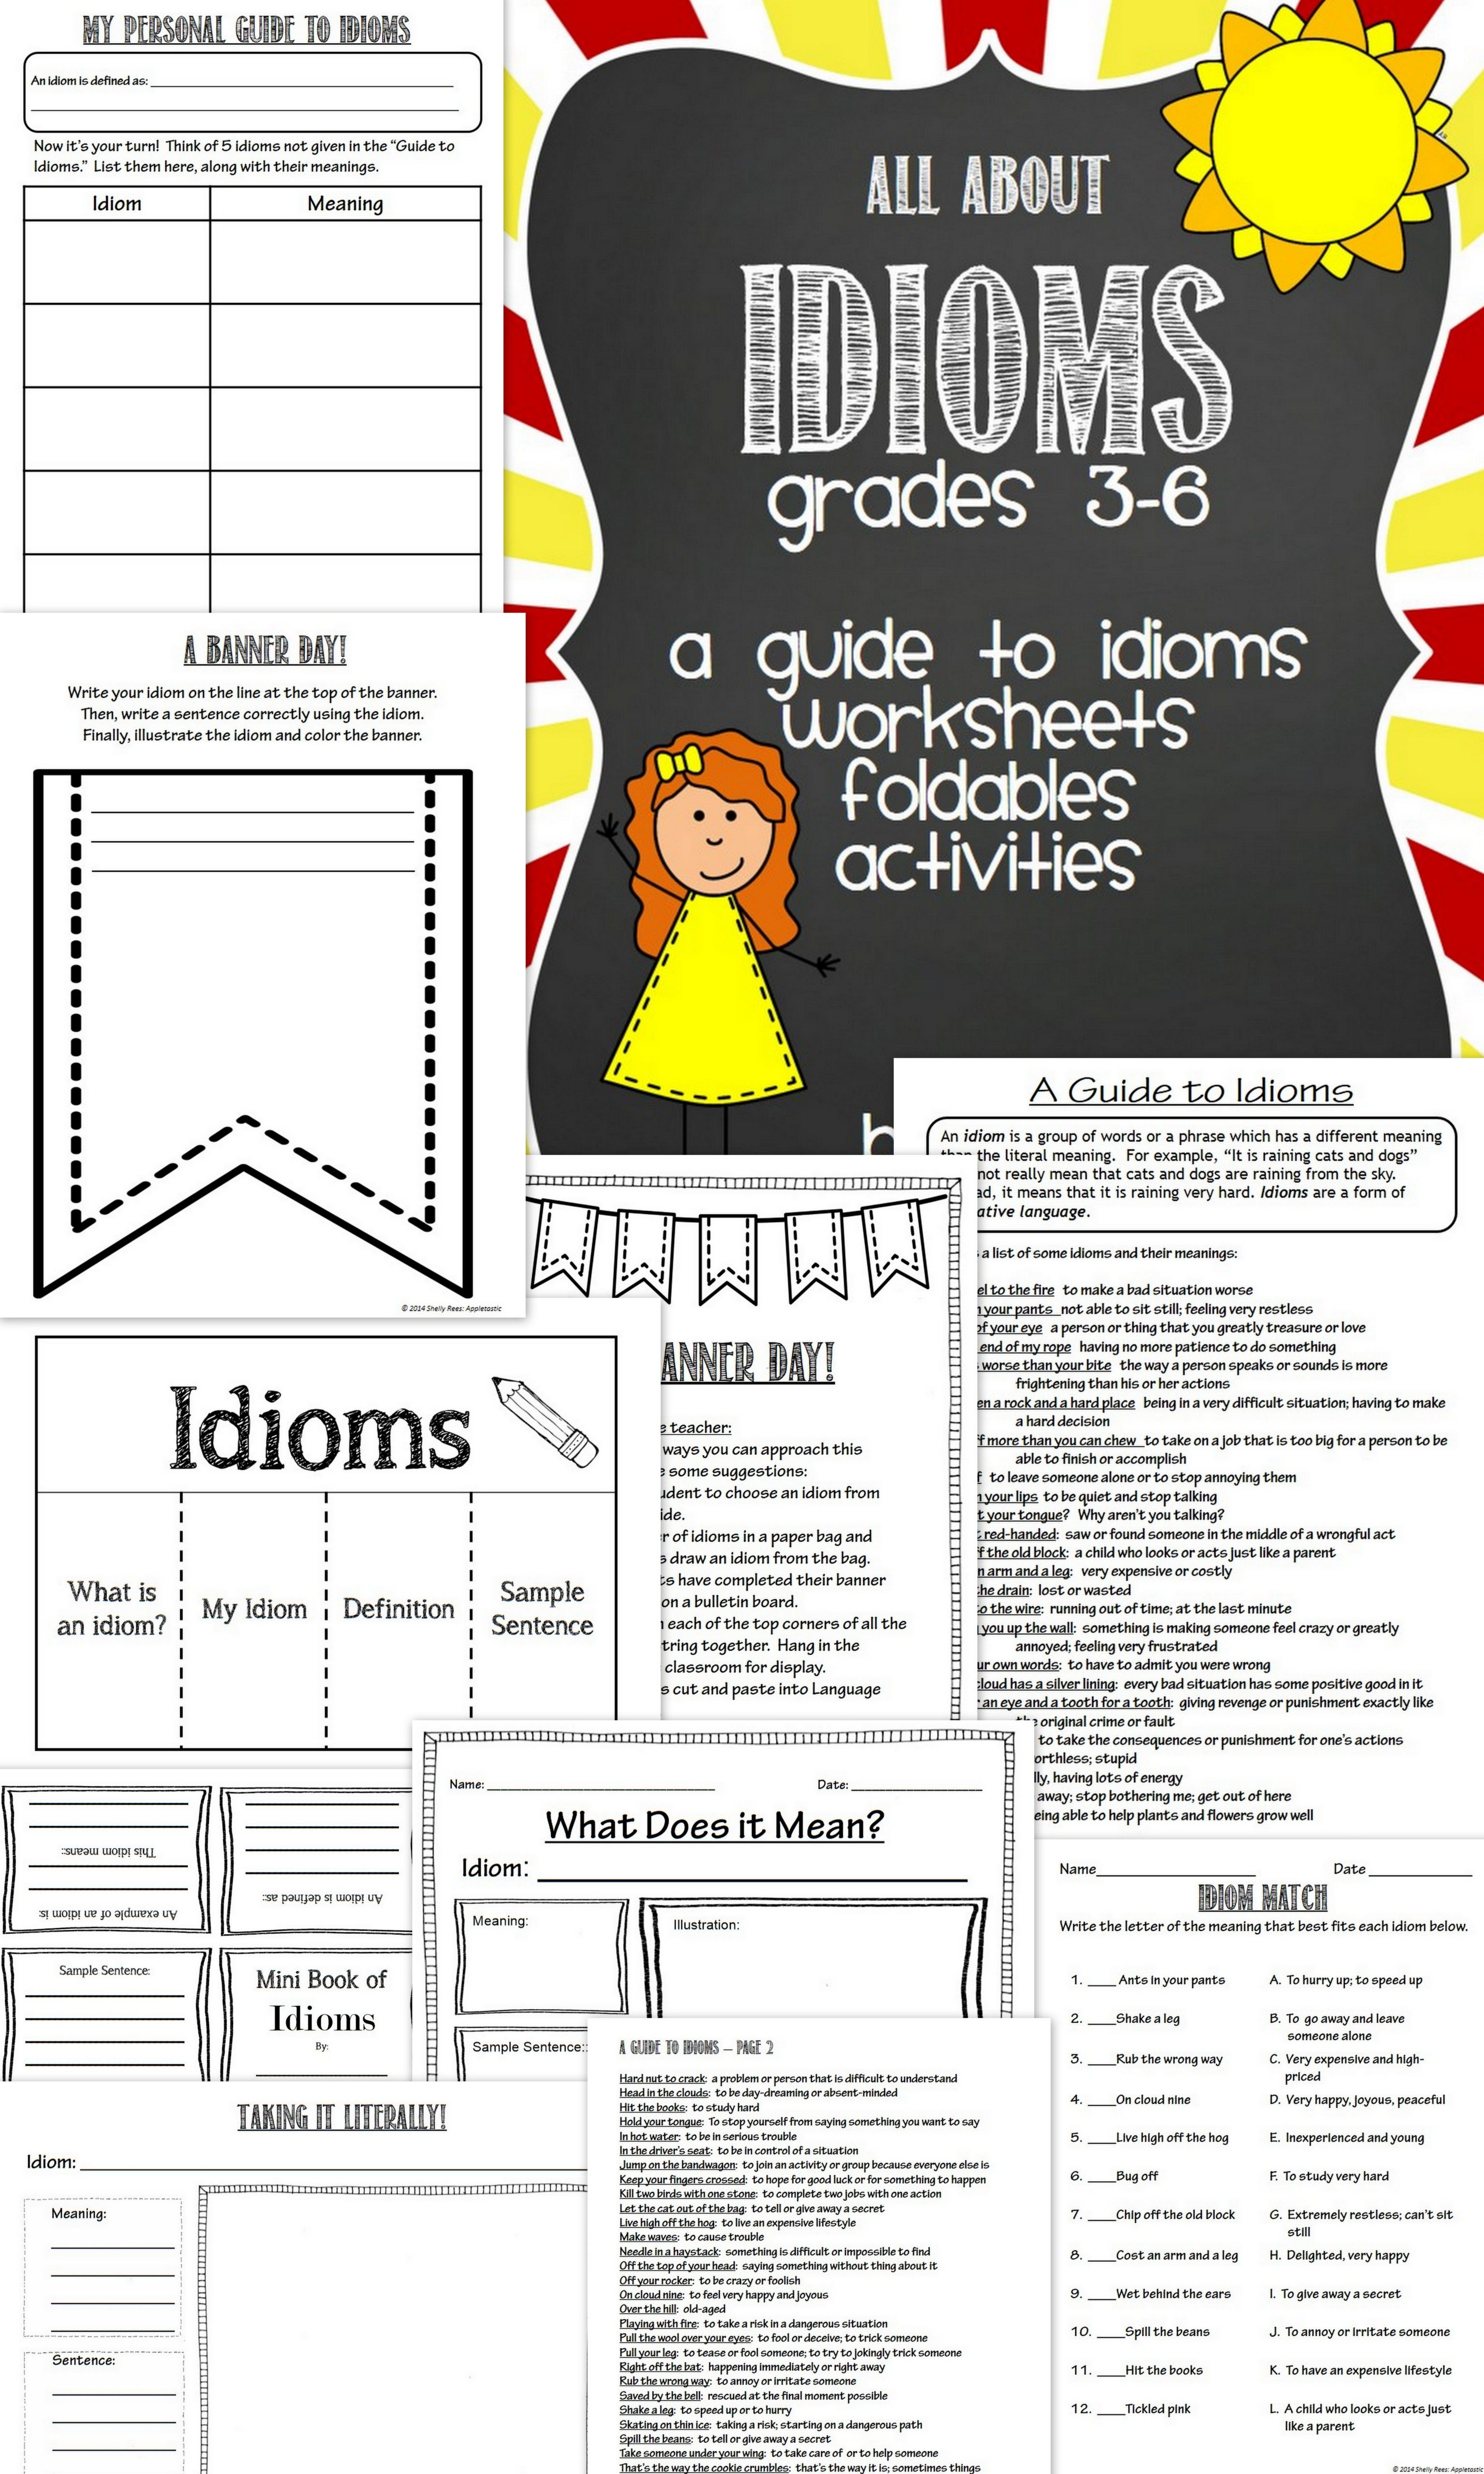 Idioms Worksheets Foldables Student Guide Amp Activities